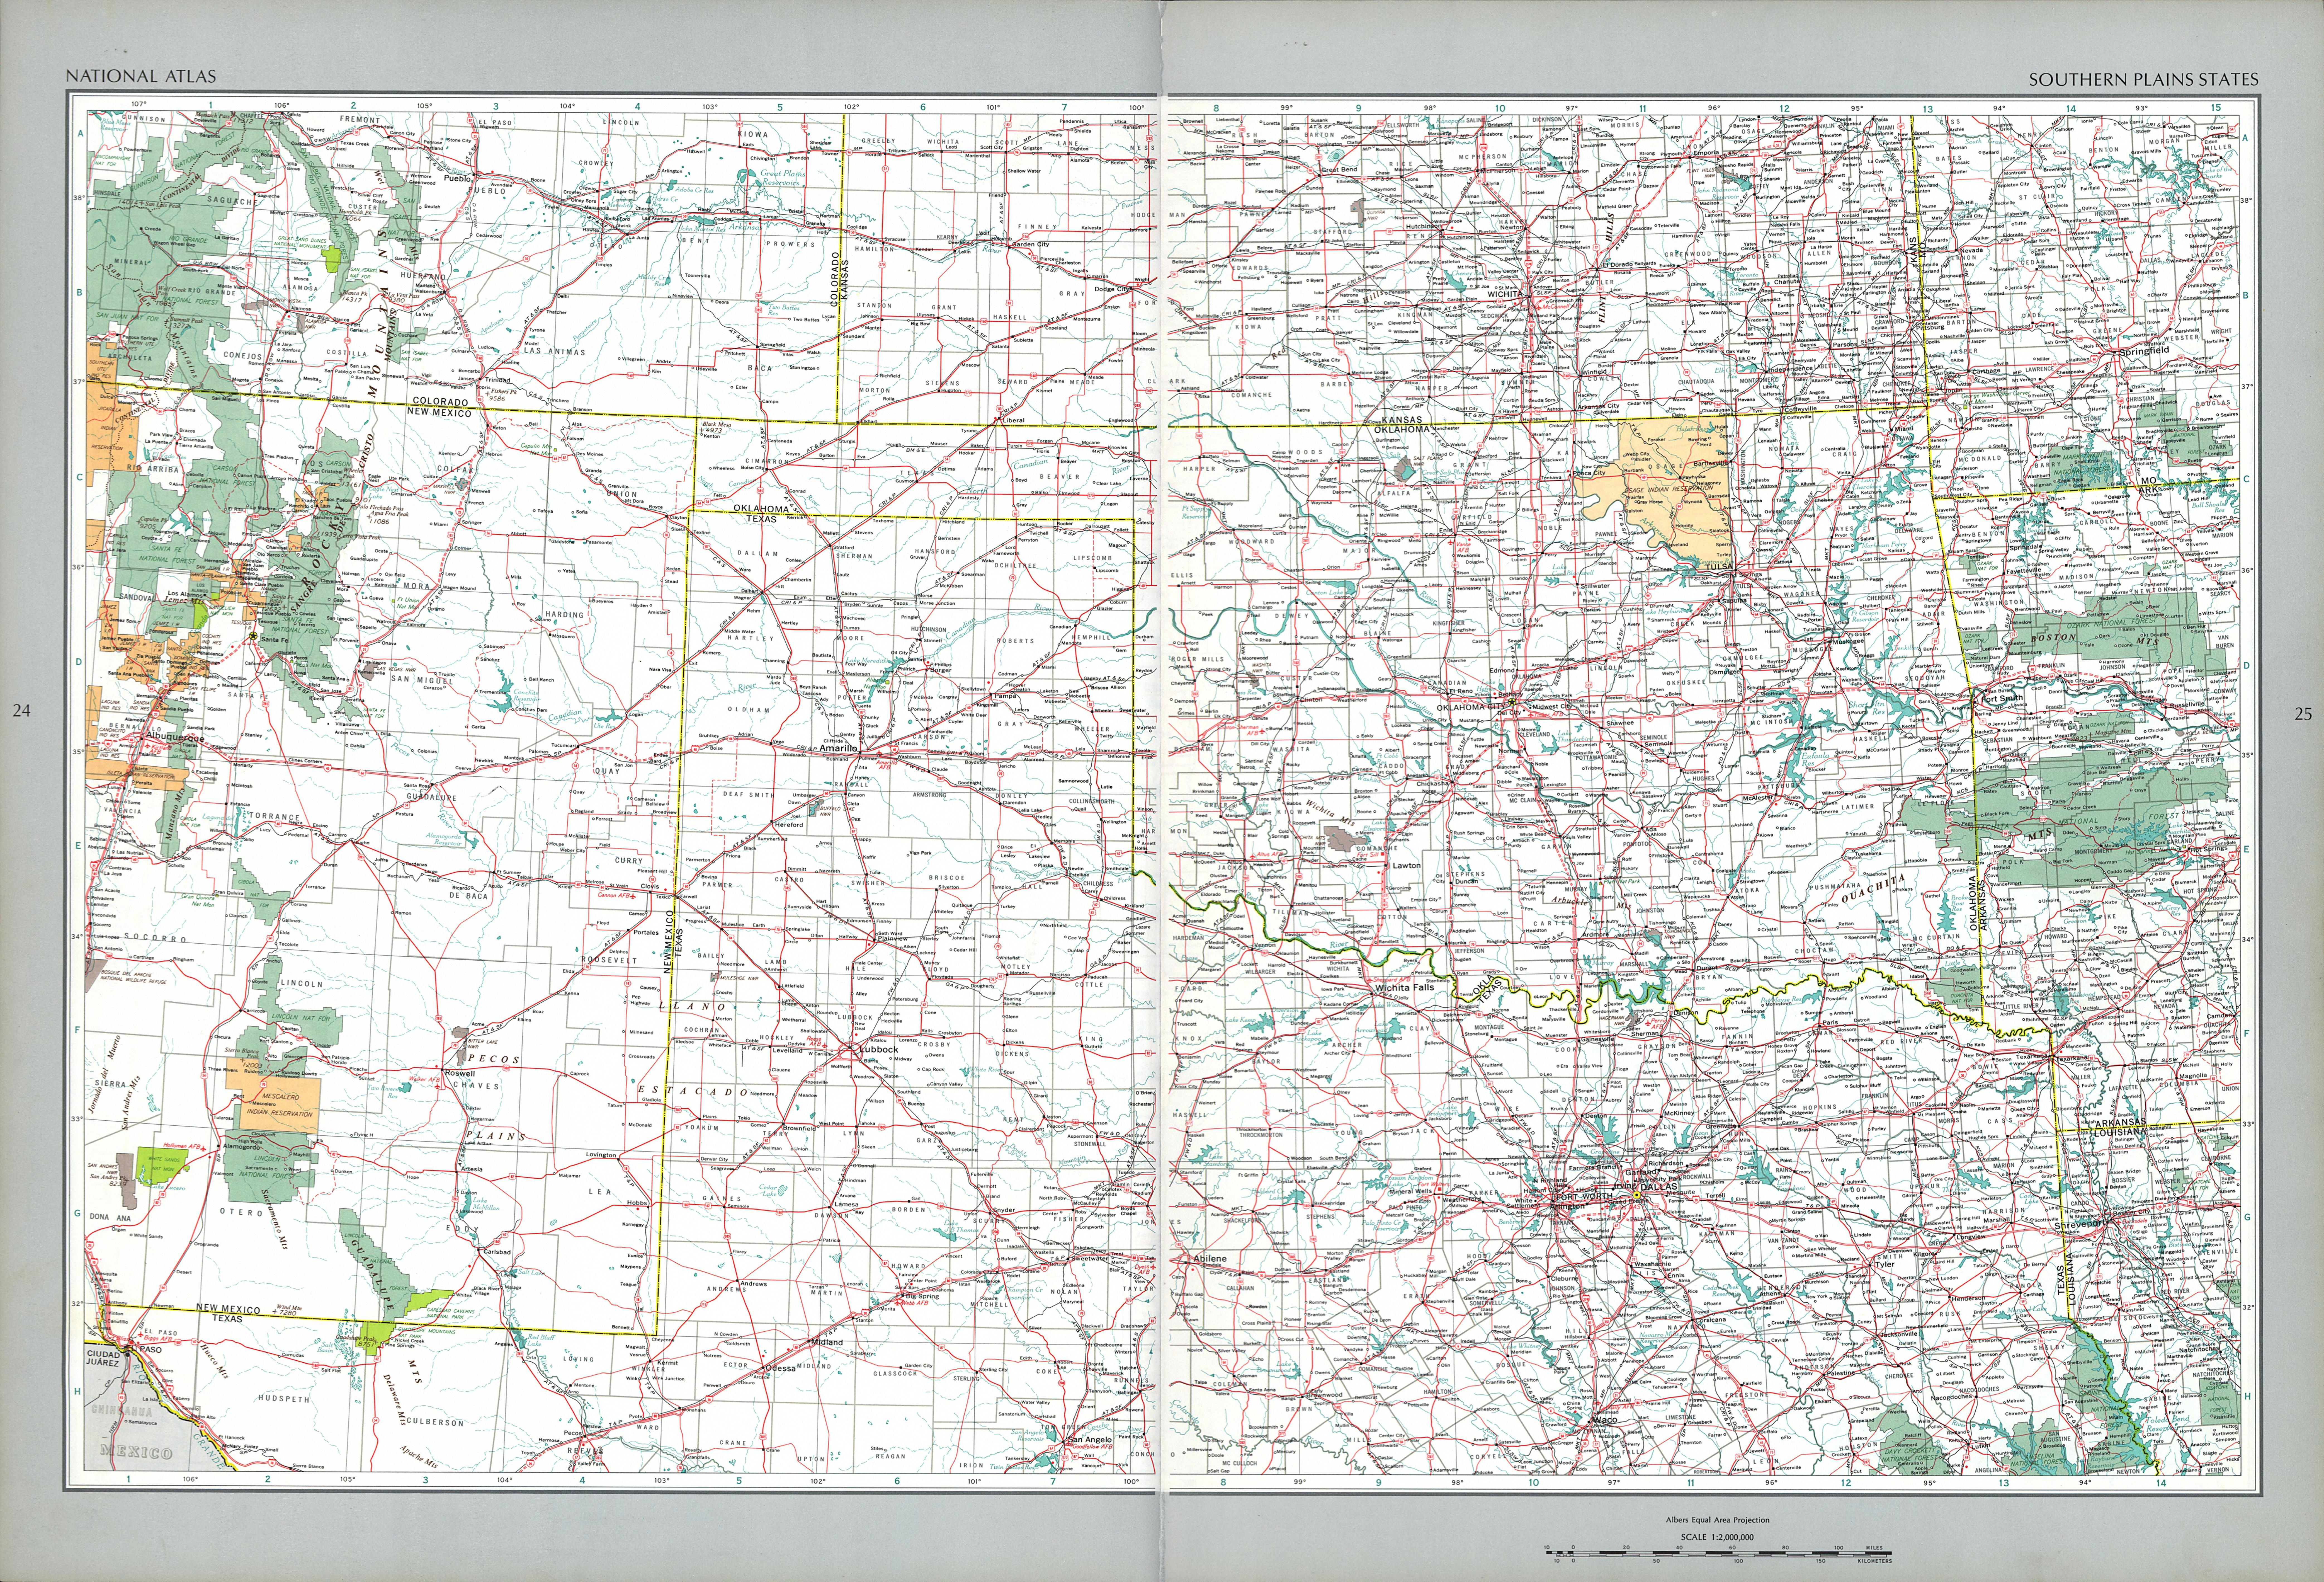 Southern Plains States Map, United States